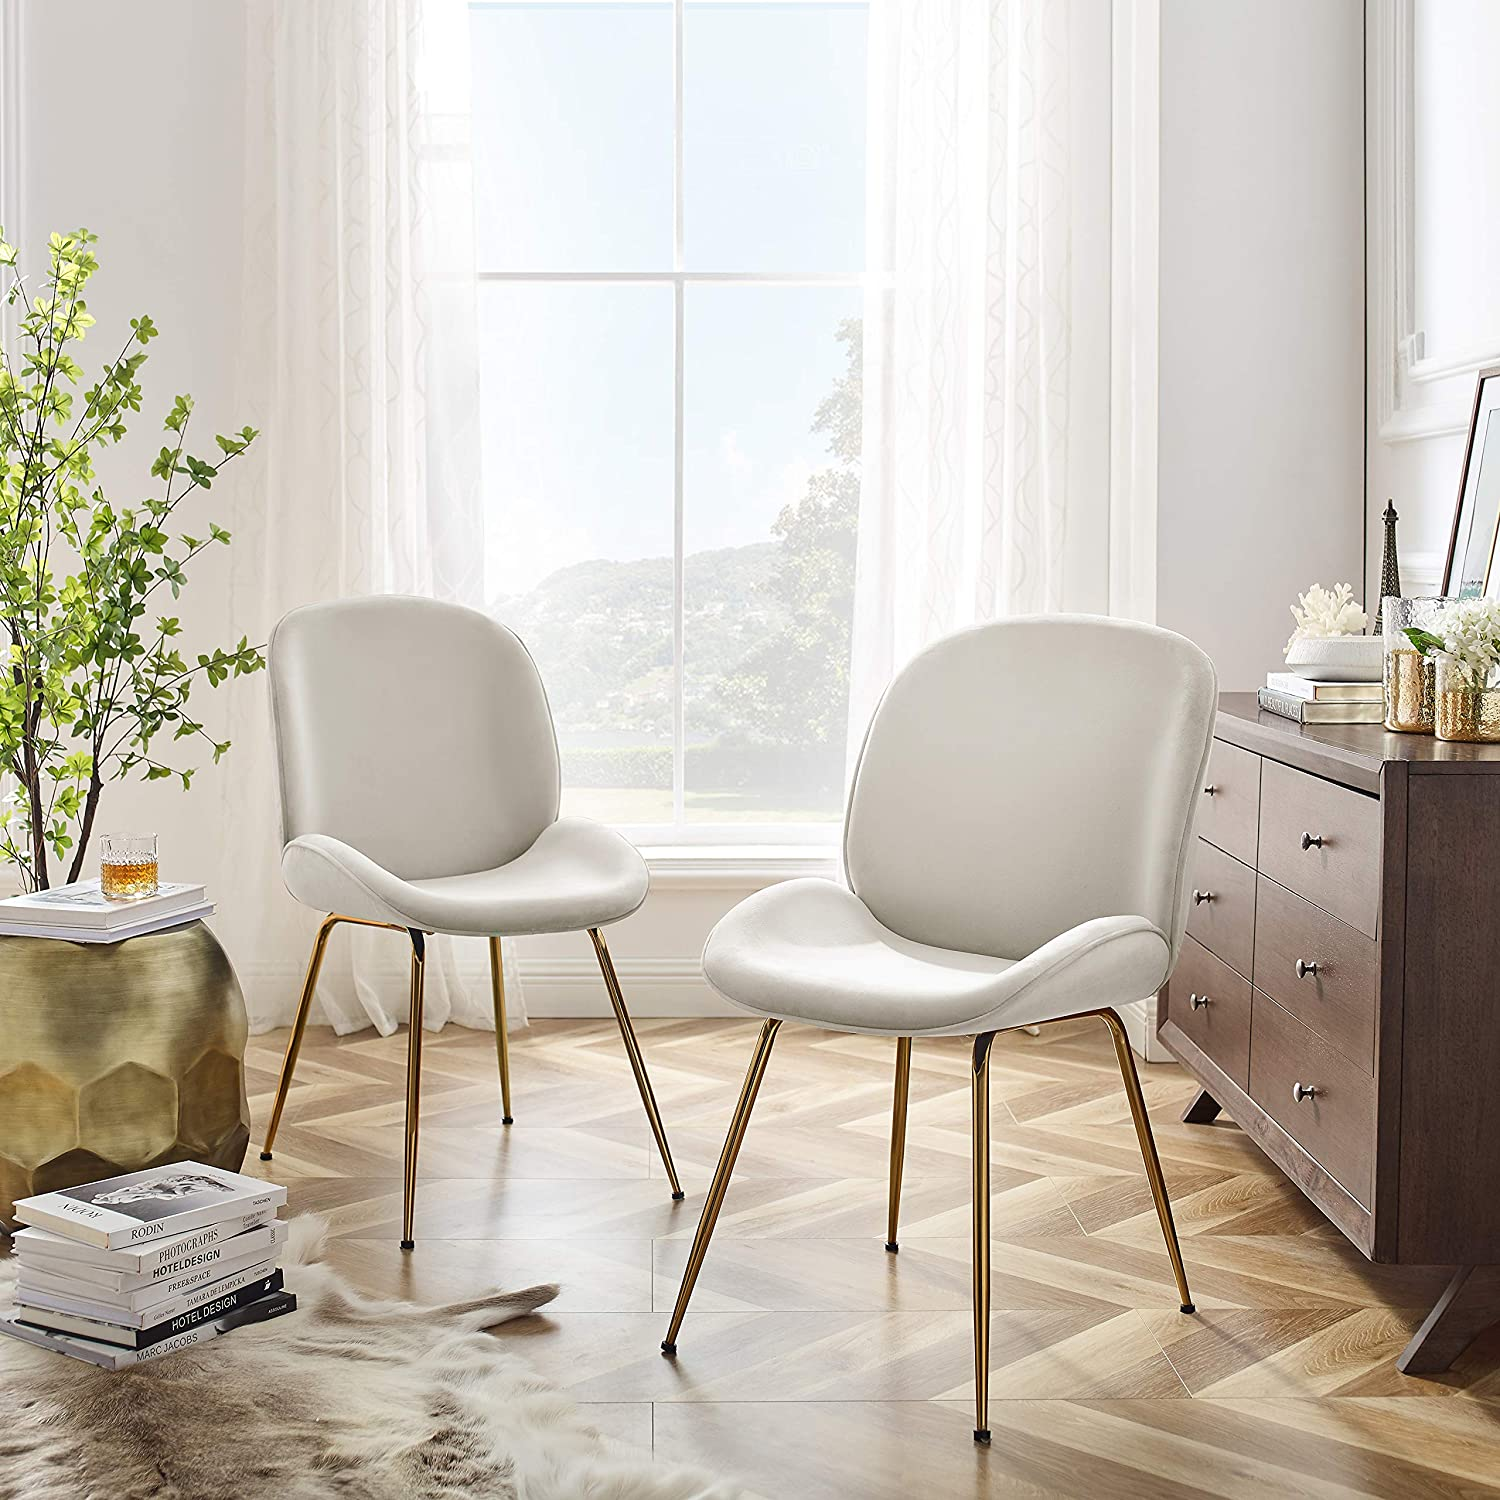 light-white-beige-upholstered-dining-chairs-shell-chair-shape-ergonomic-stylish-dining-chairs-luxury-gold-legs-sophisticated-dining-room-ideas